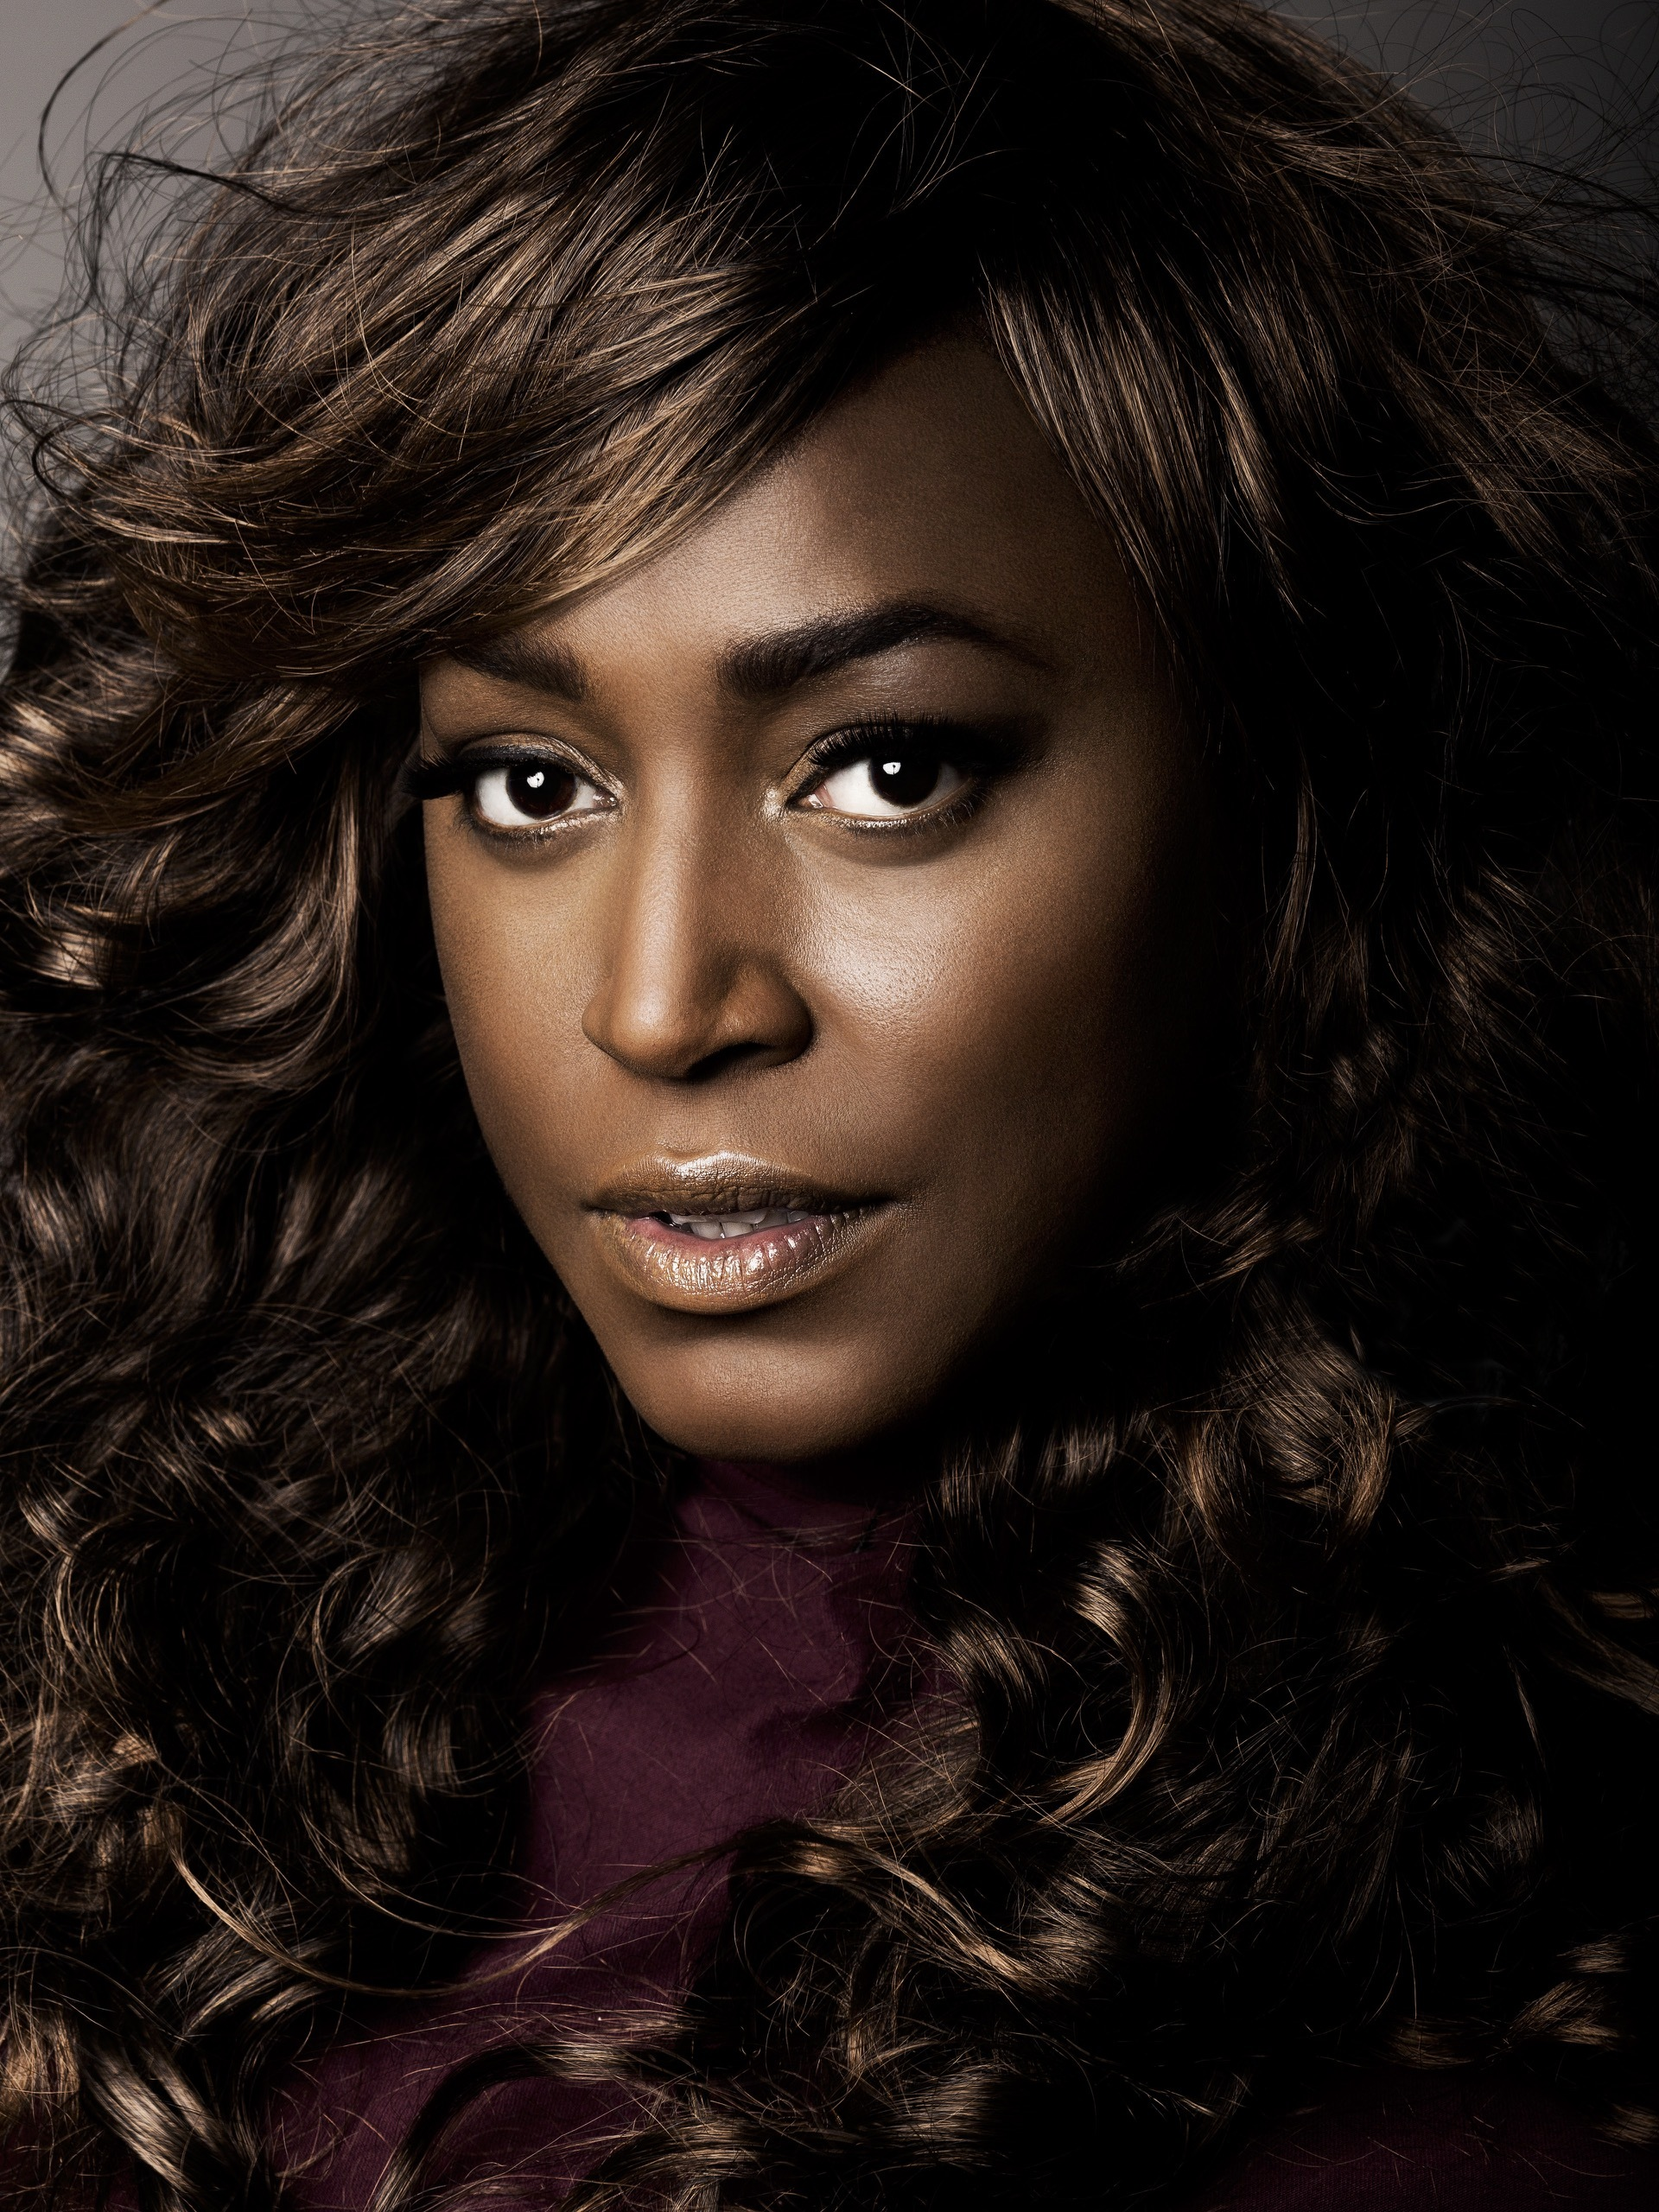 Mica Paris out to prove love conquers injustice